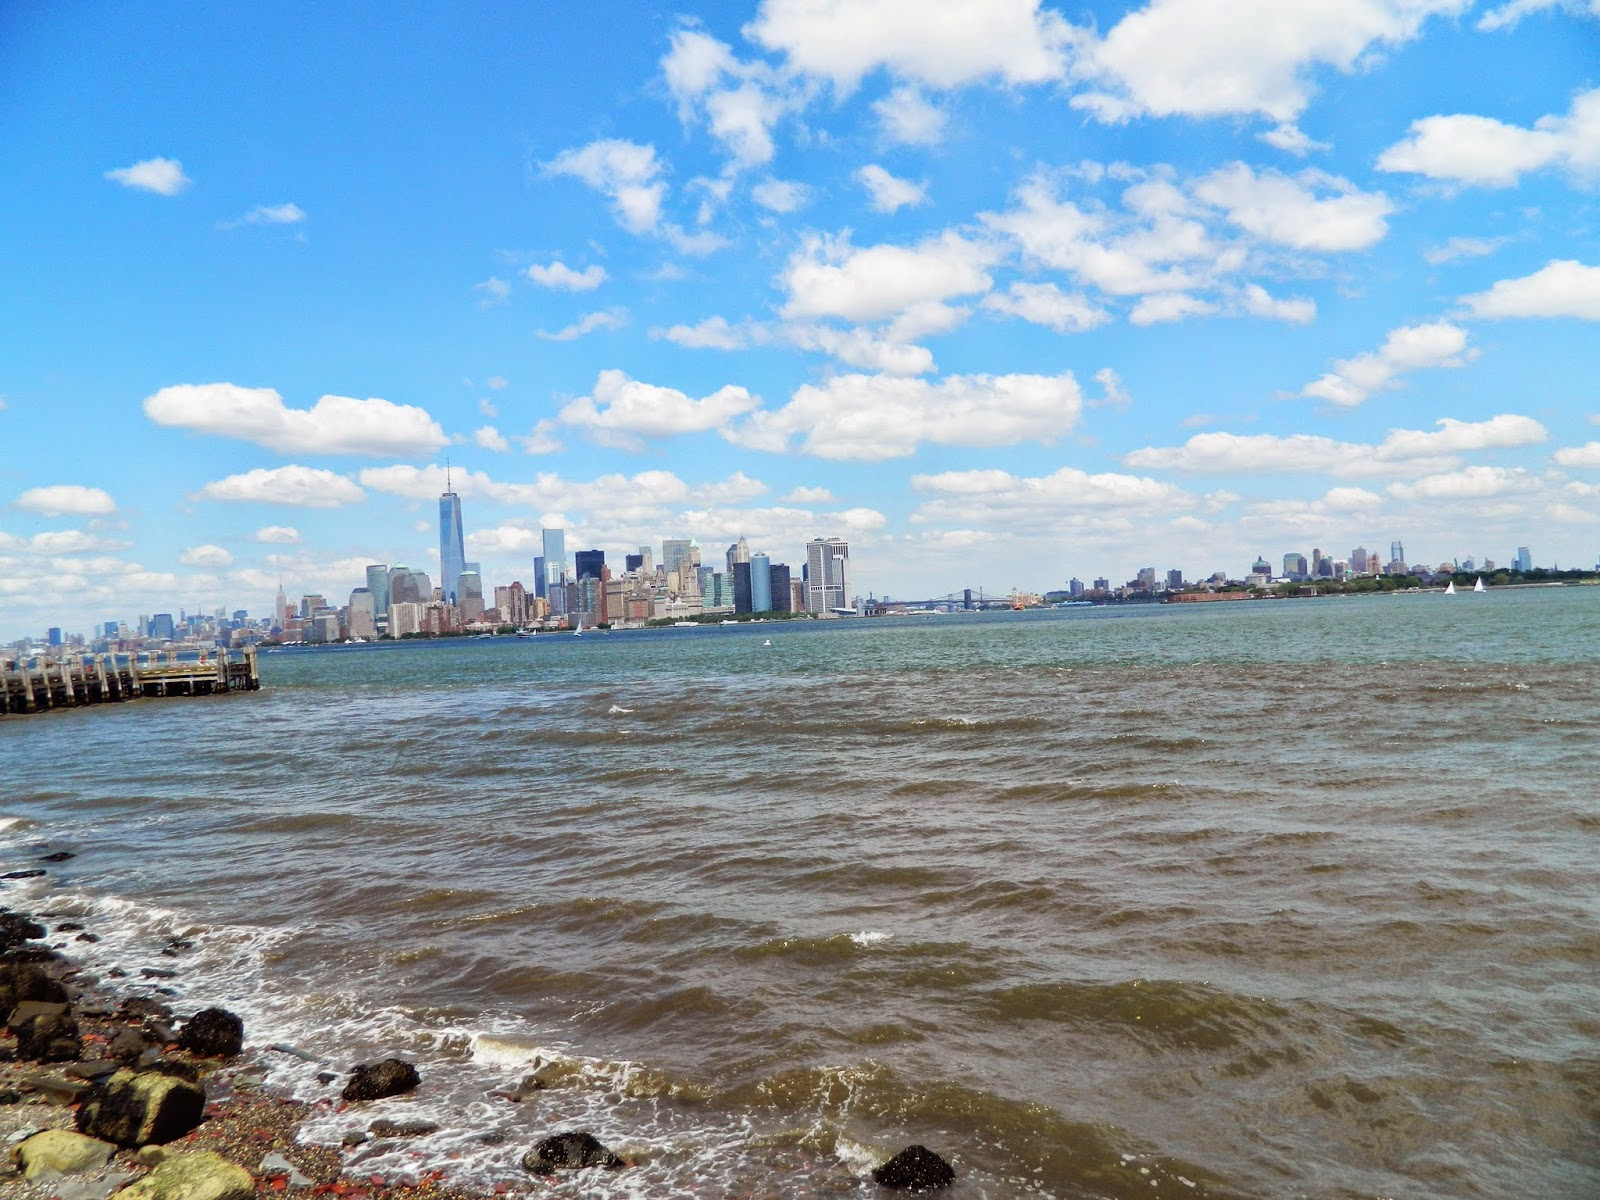 new york city skyline from statue of liberty clear day beautiful sun finance district beach shore